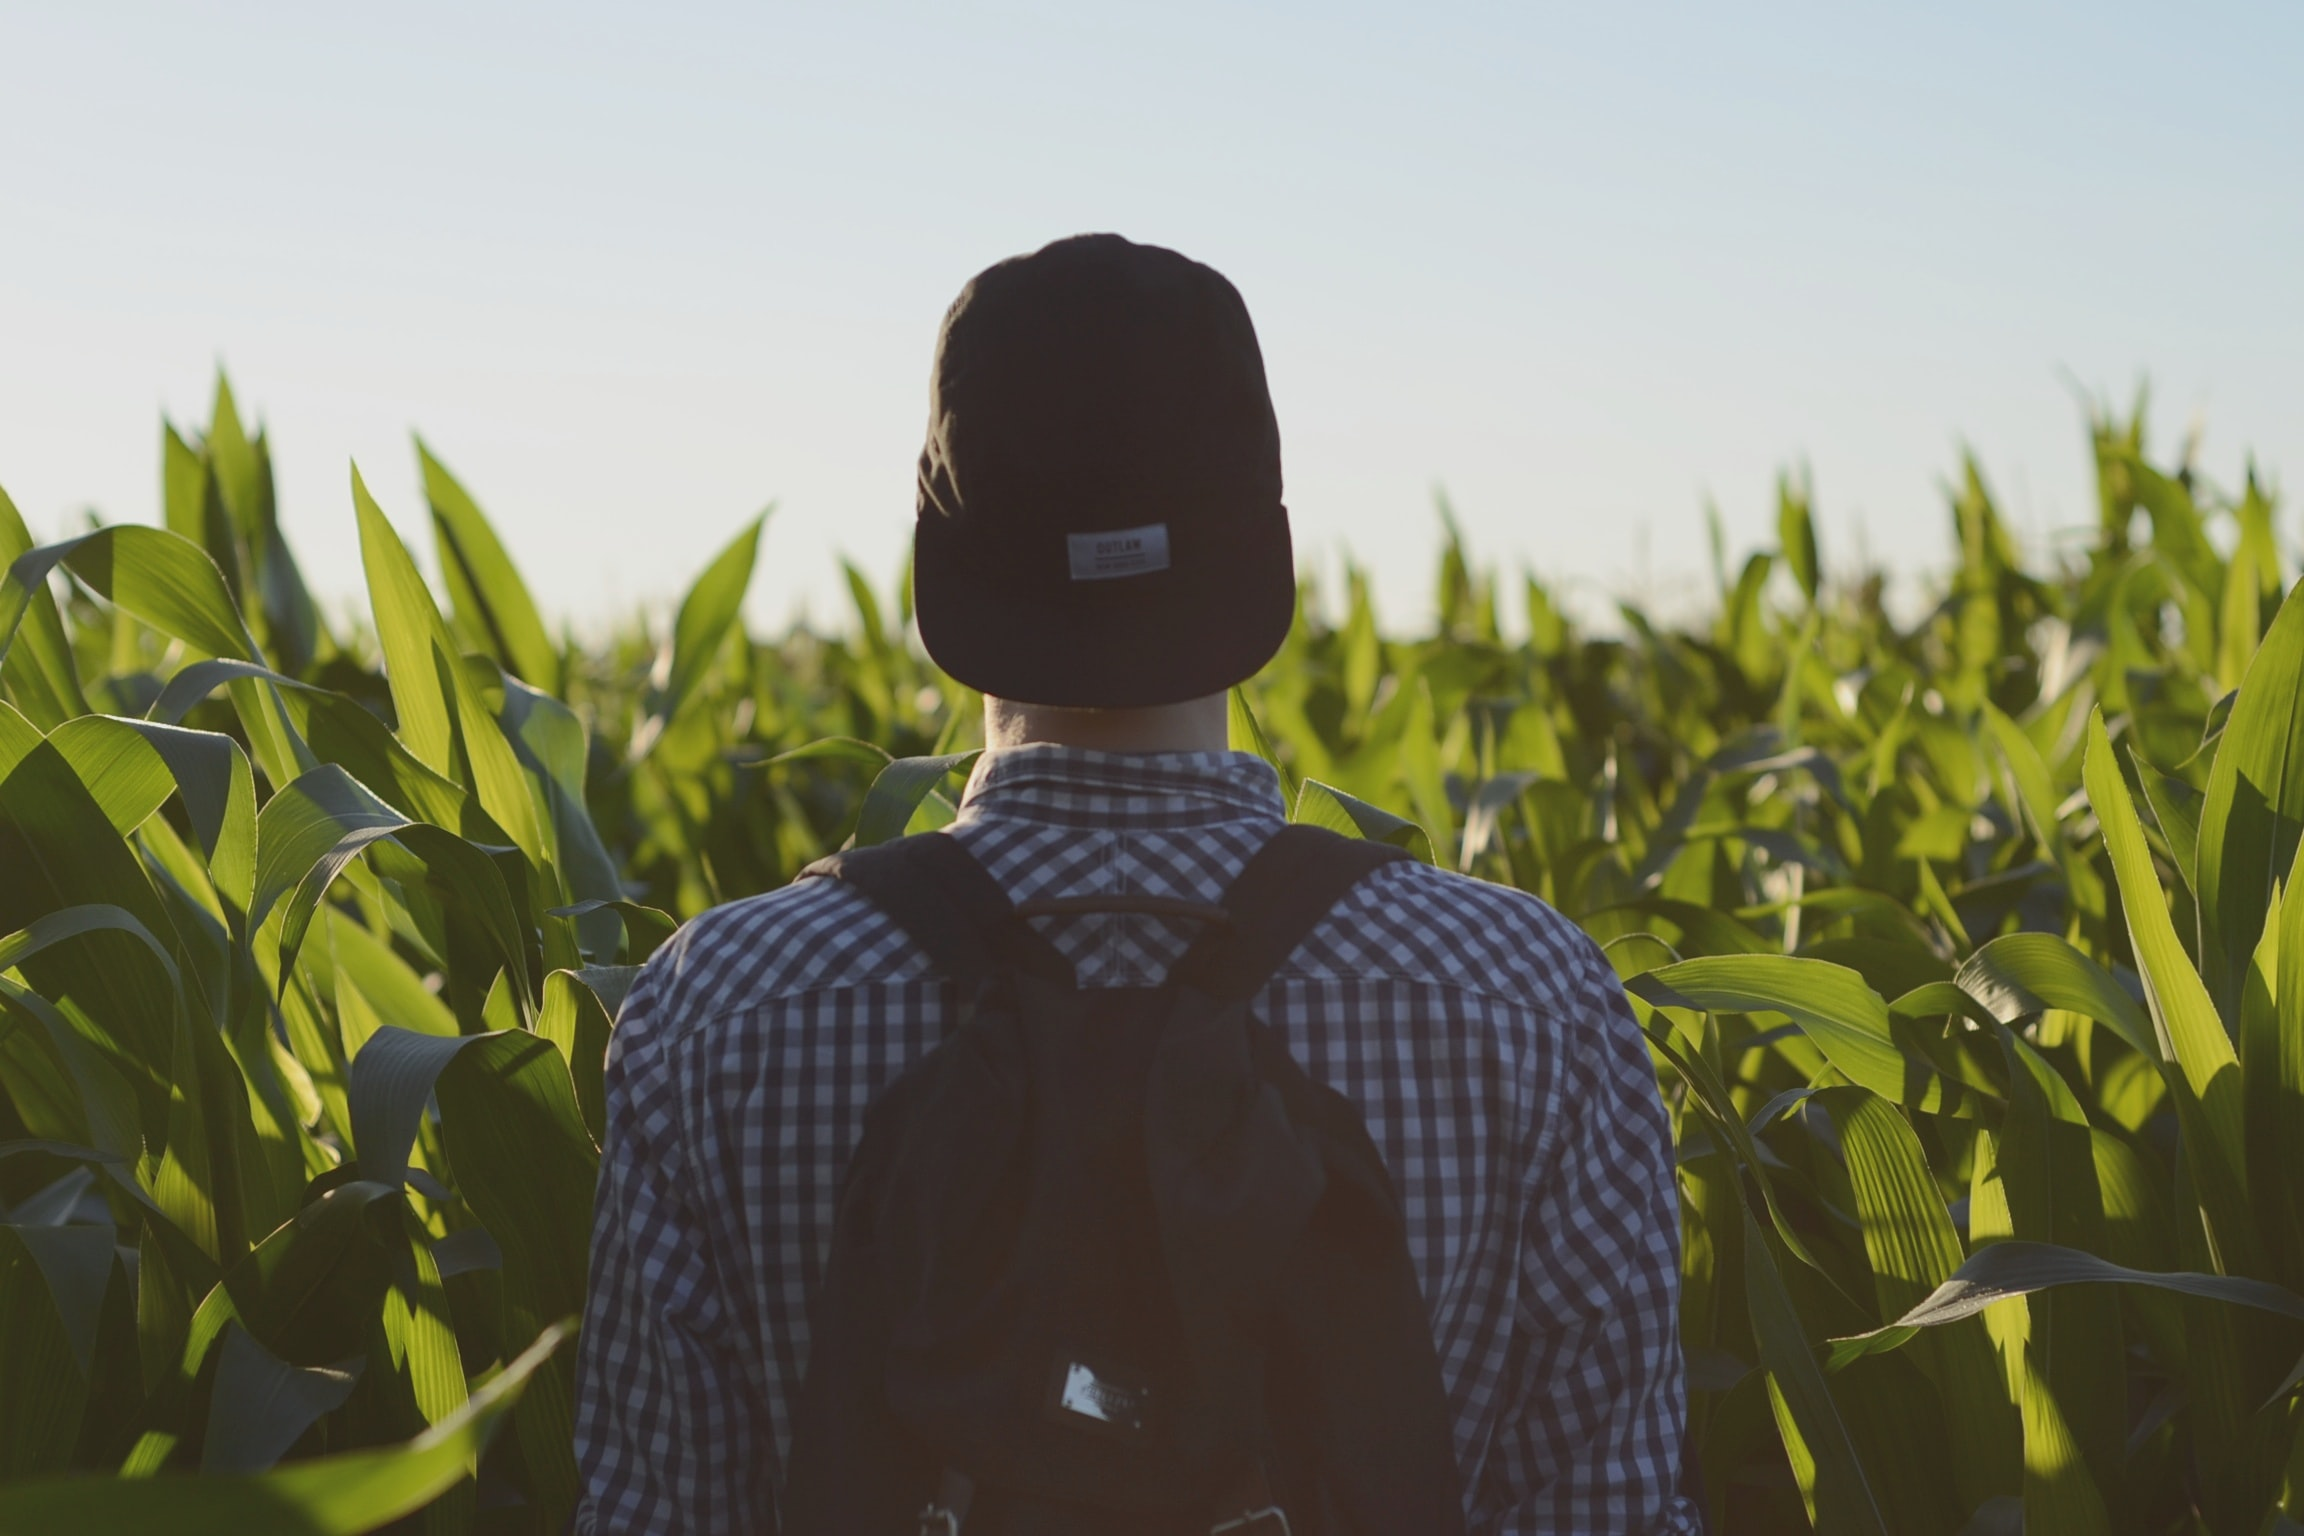 man facing green corn plants during day